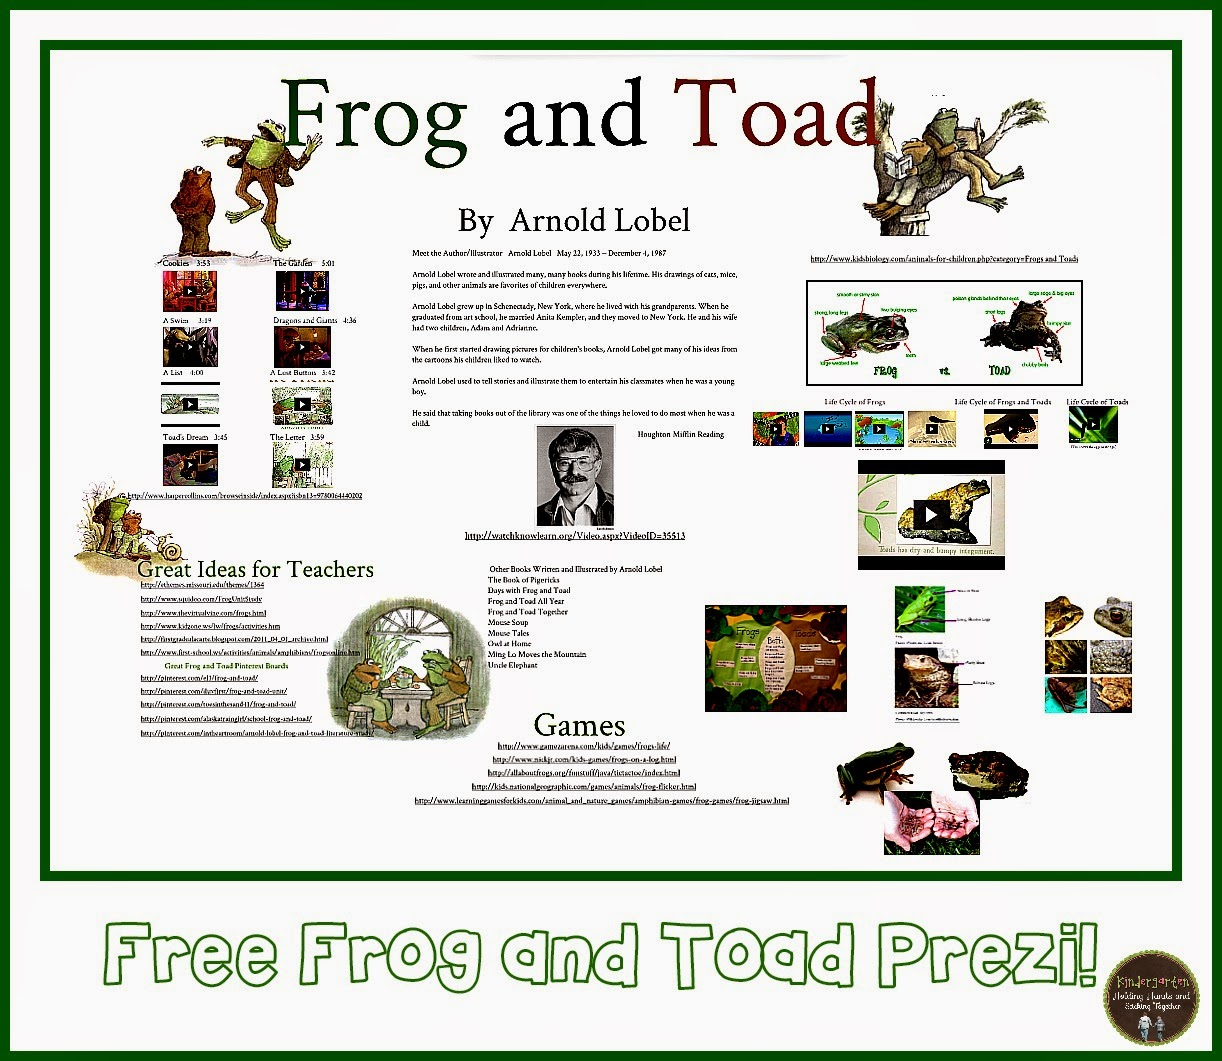 Worksheets Frog And Toad Together Worksheets kindergarten holding hands and sticking together fun with frog toad freebies